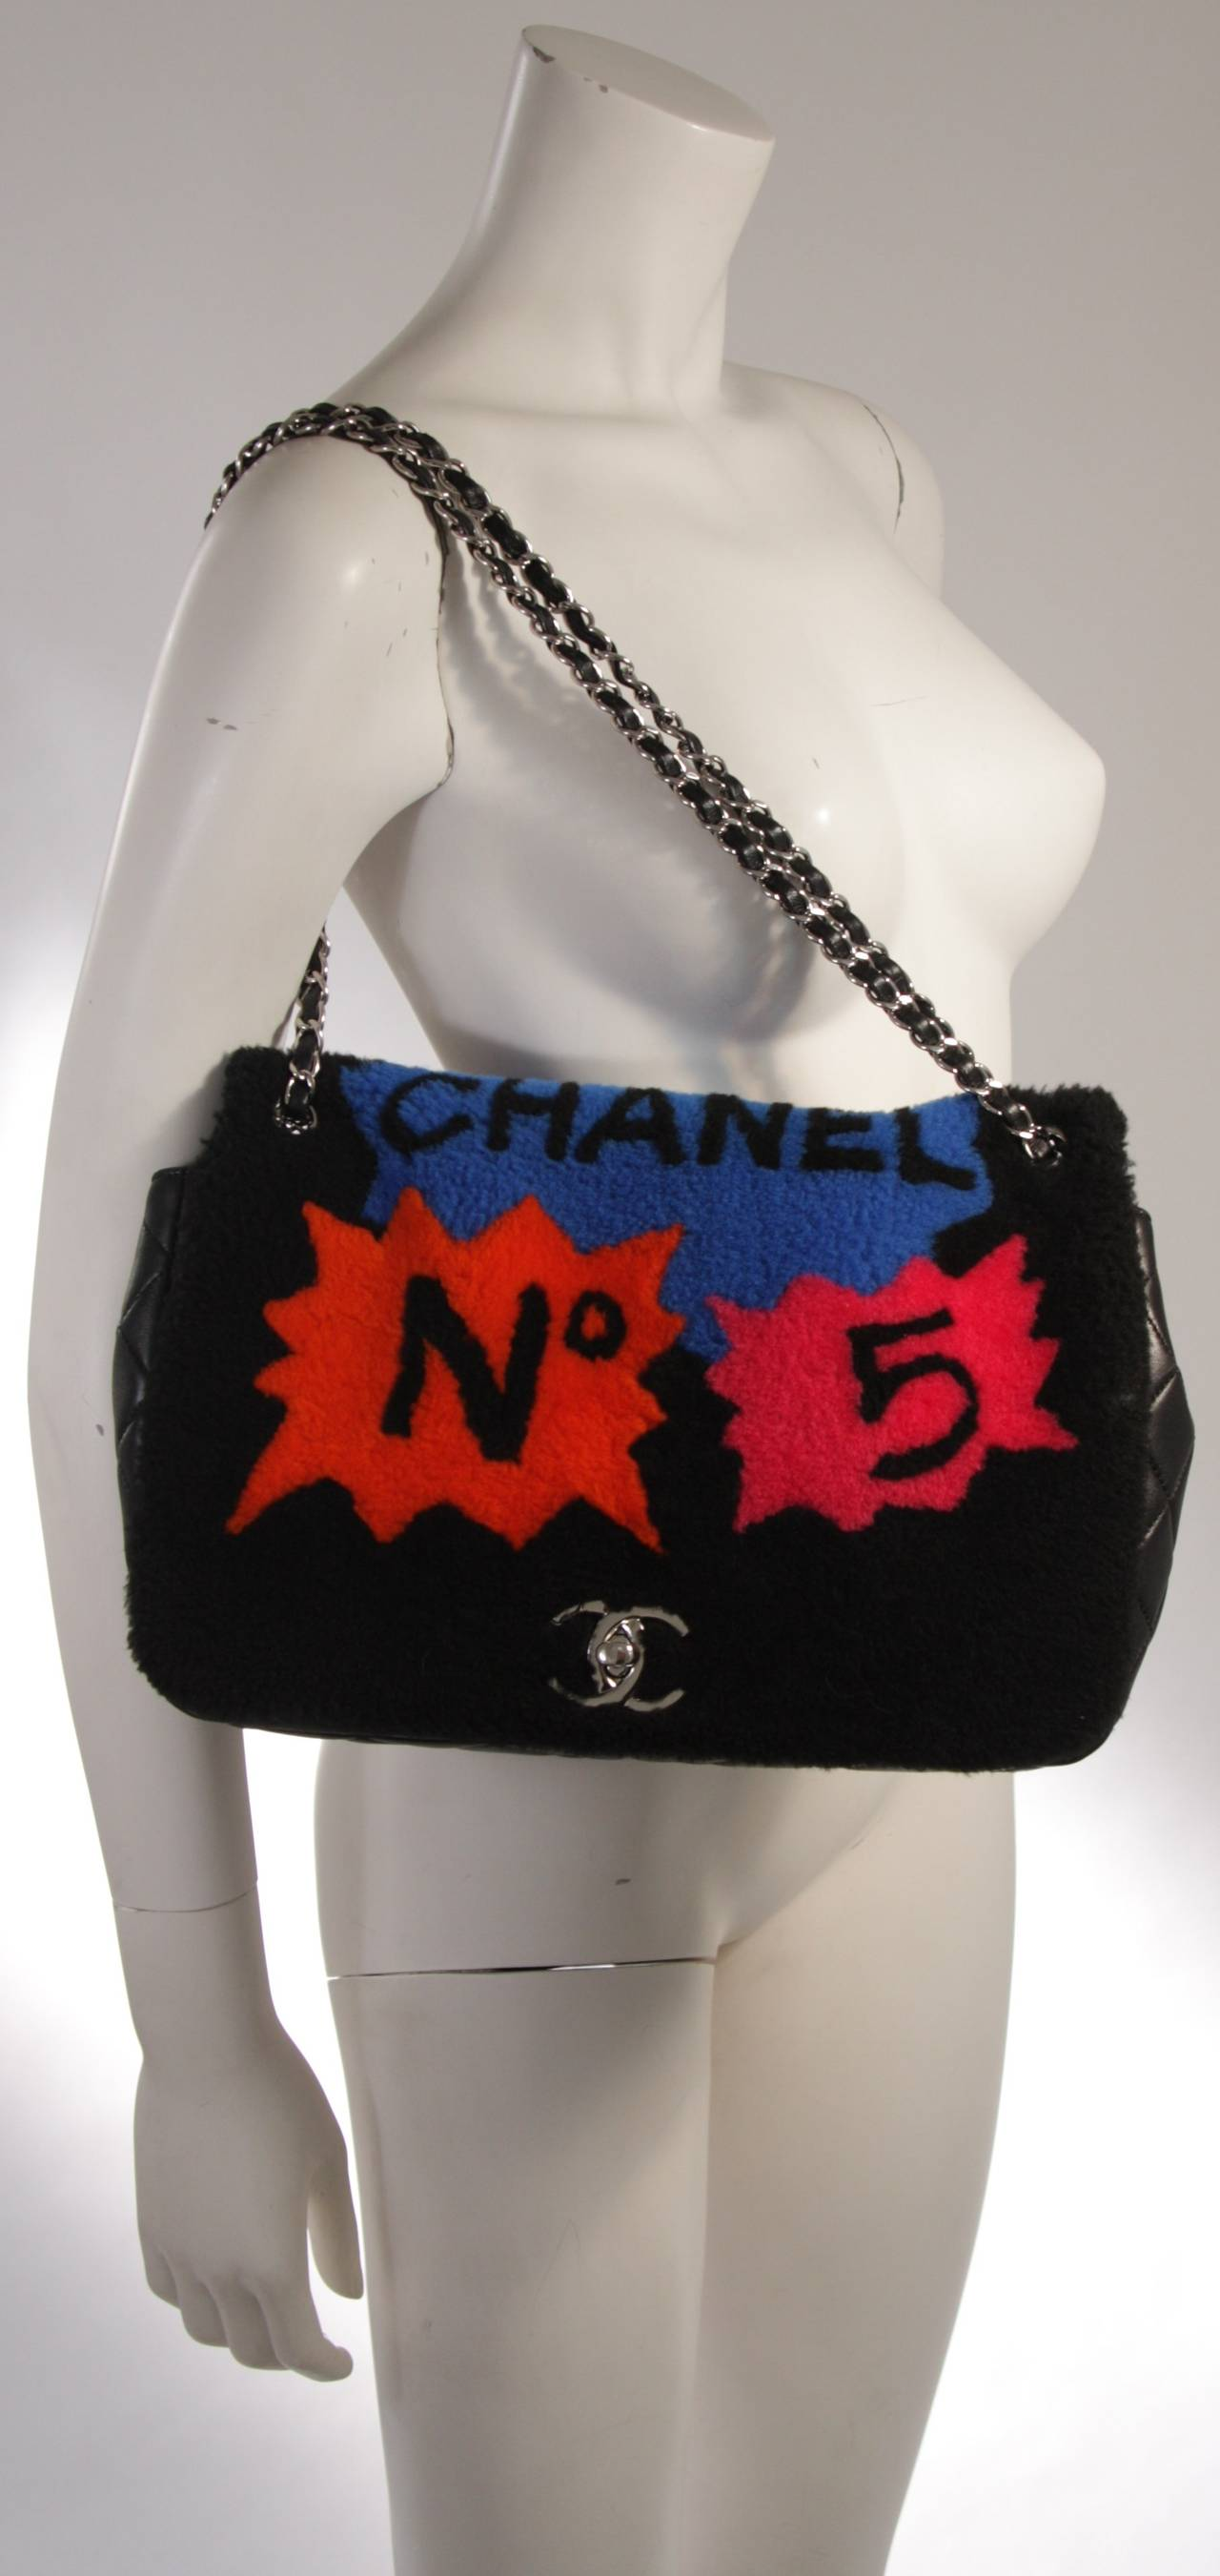 Chanel Shearling Art Pop Large Purse with Quilted Lambskin Fall 2014 For Sale 5